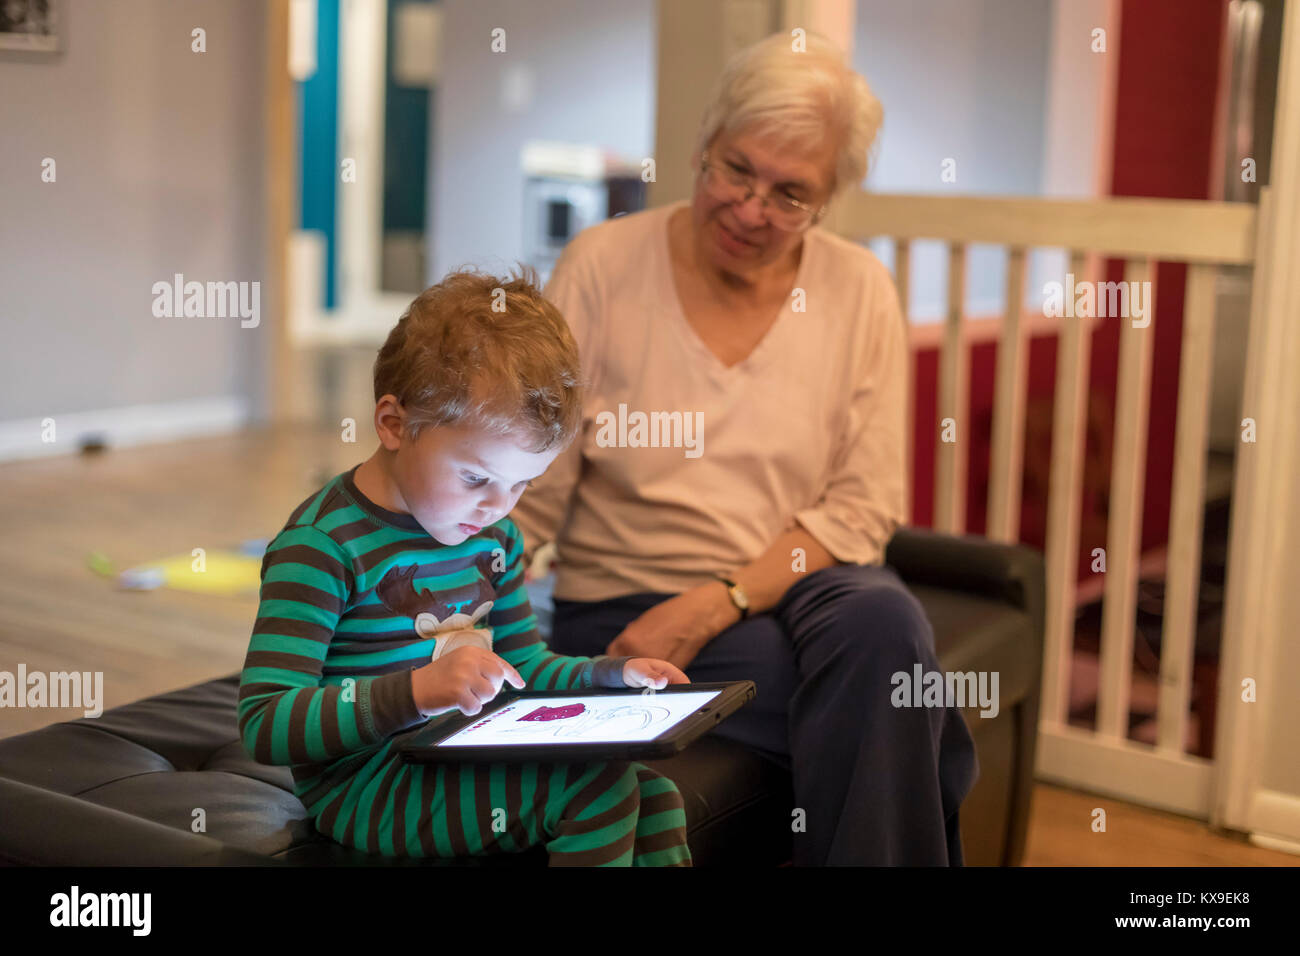 Wheat Ridge, Colorado - Susan Newell, 69, watches as her grandson, Adam Hjermstad Jr., 3, plays an educational game - Stock Image